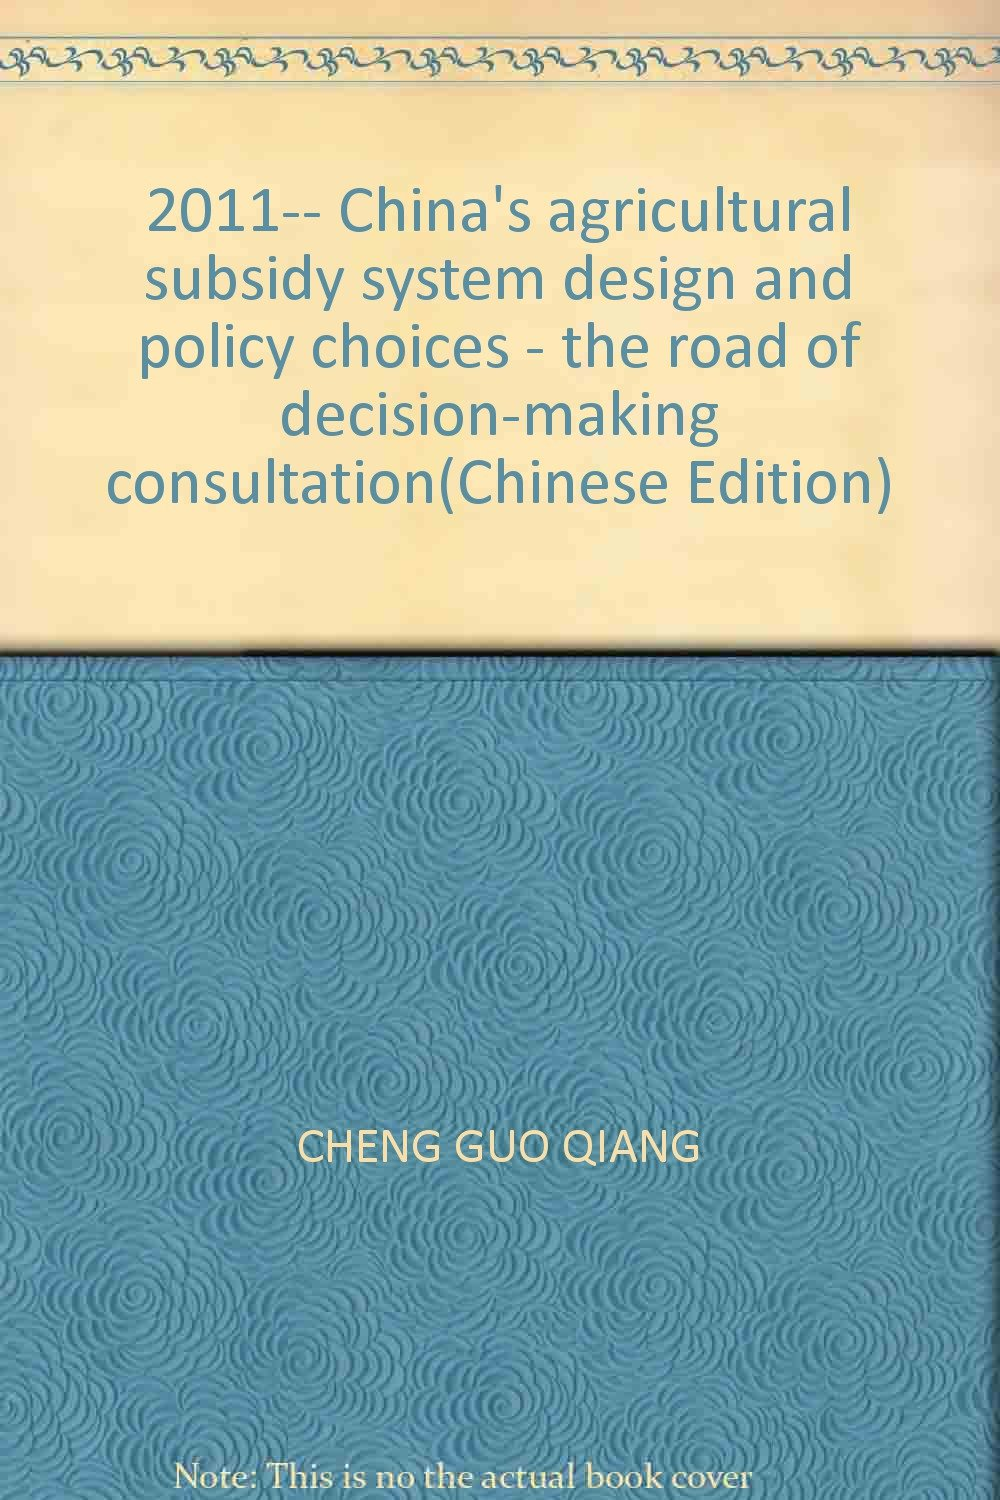 2011-- China's agricultural subsidy system design and policy choices - the road of decision-making consultation(Chinese Edition) ebook